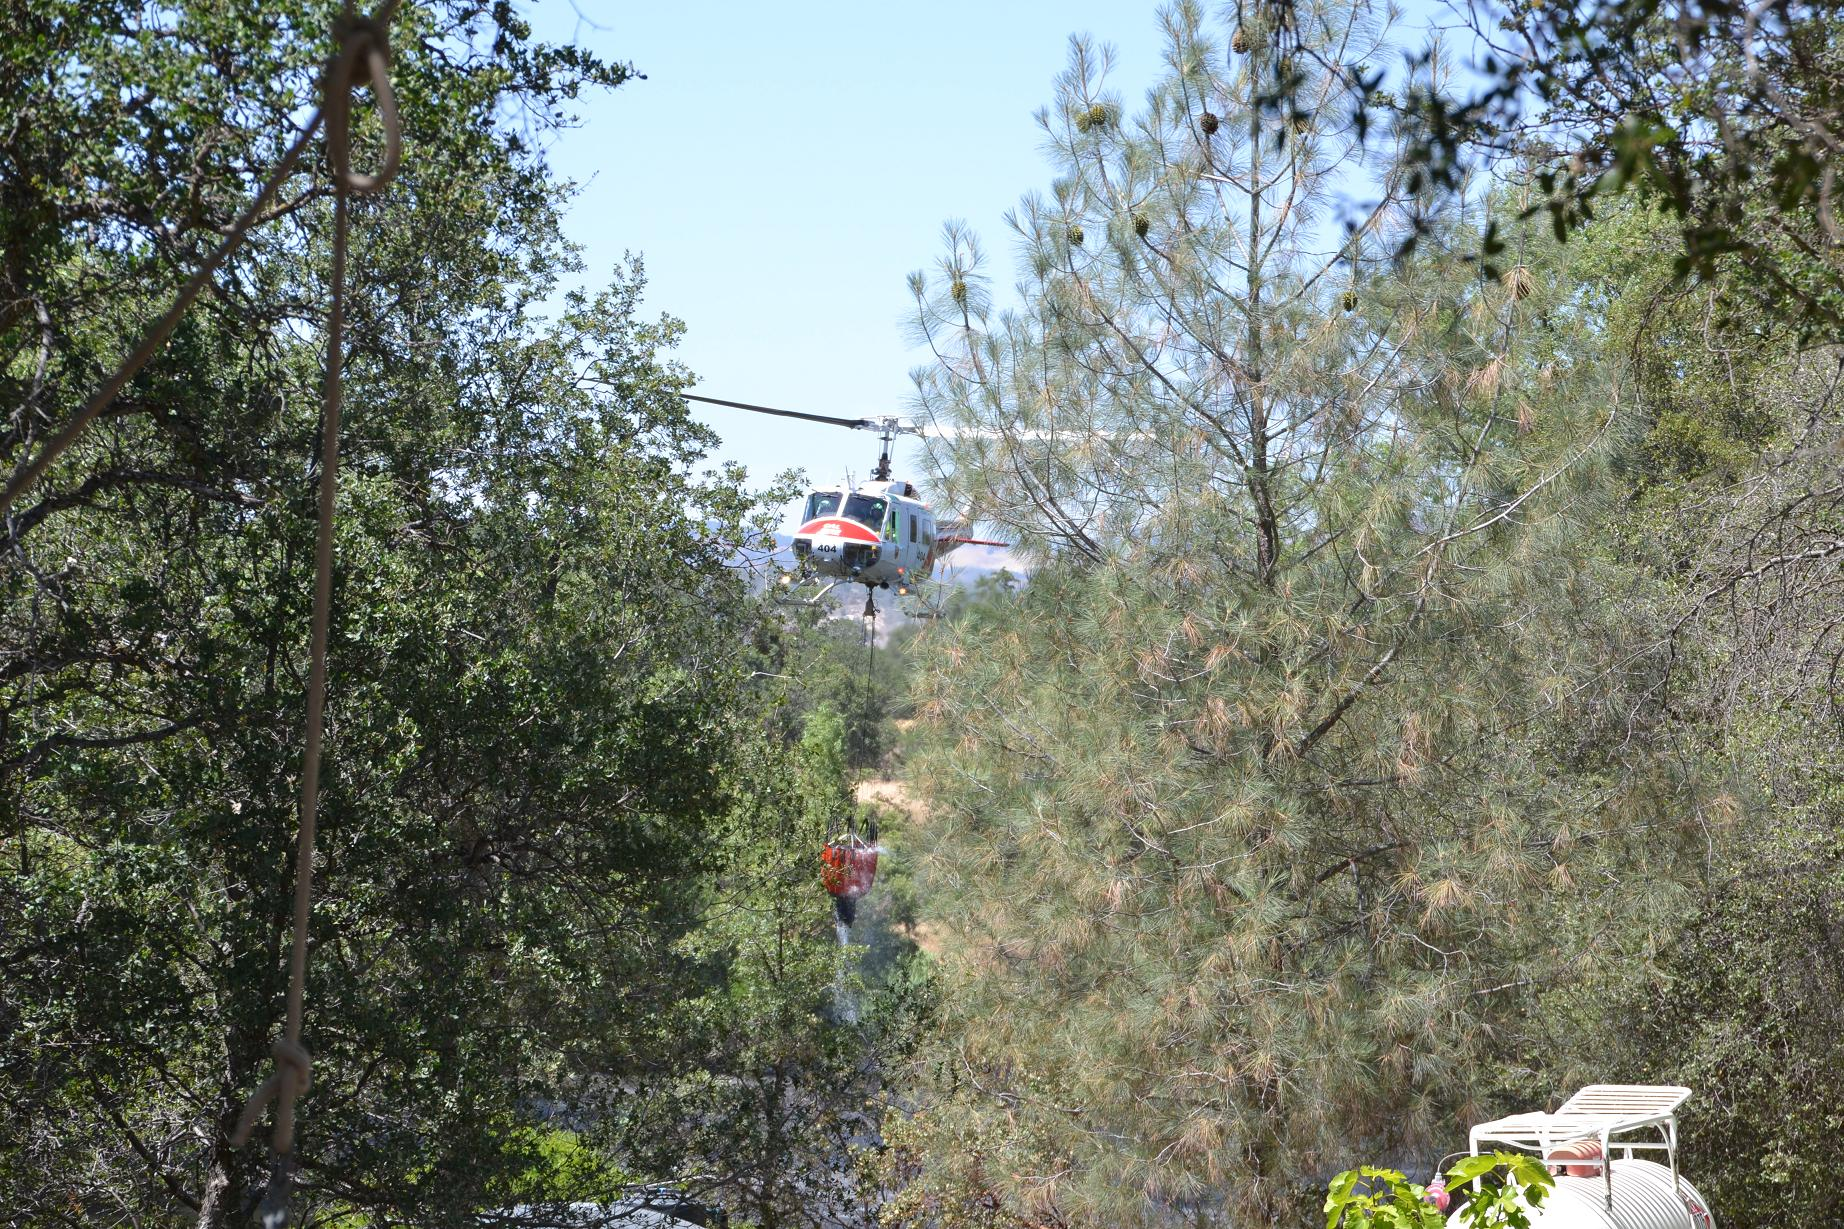 Helicopter 404 in the trees at the pond